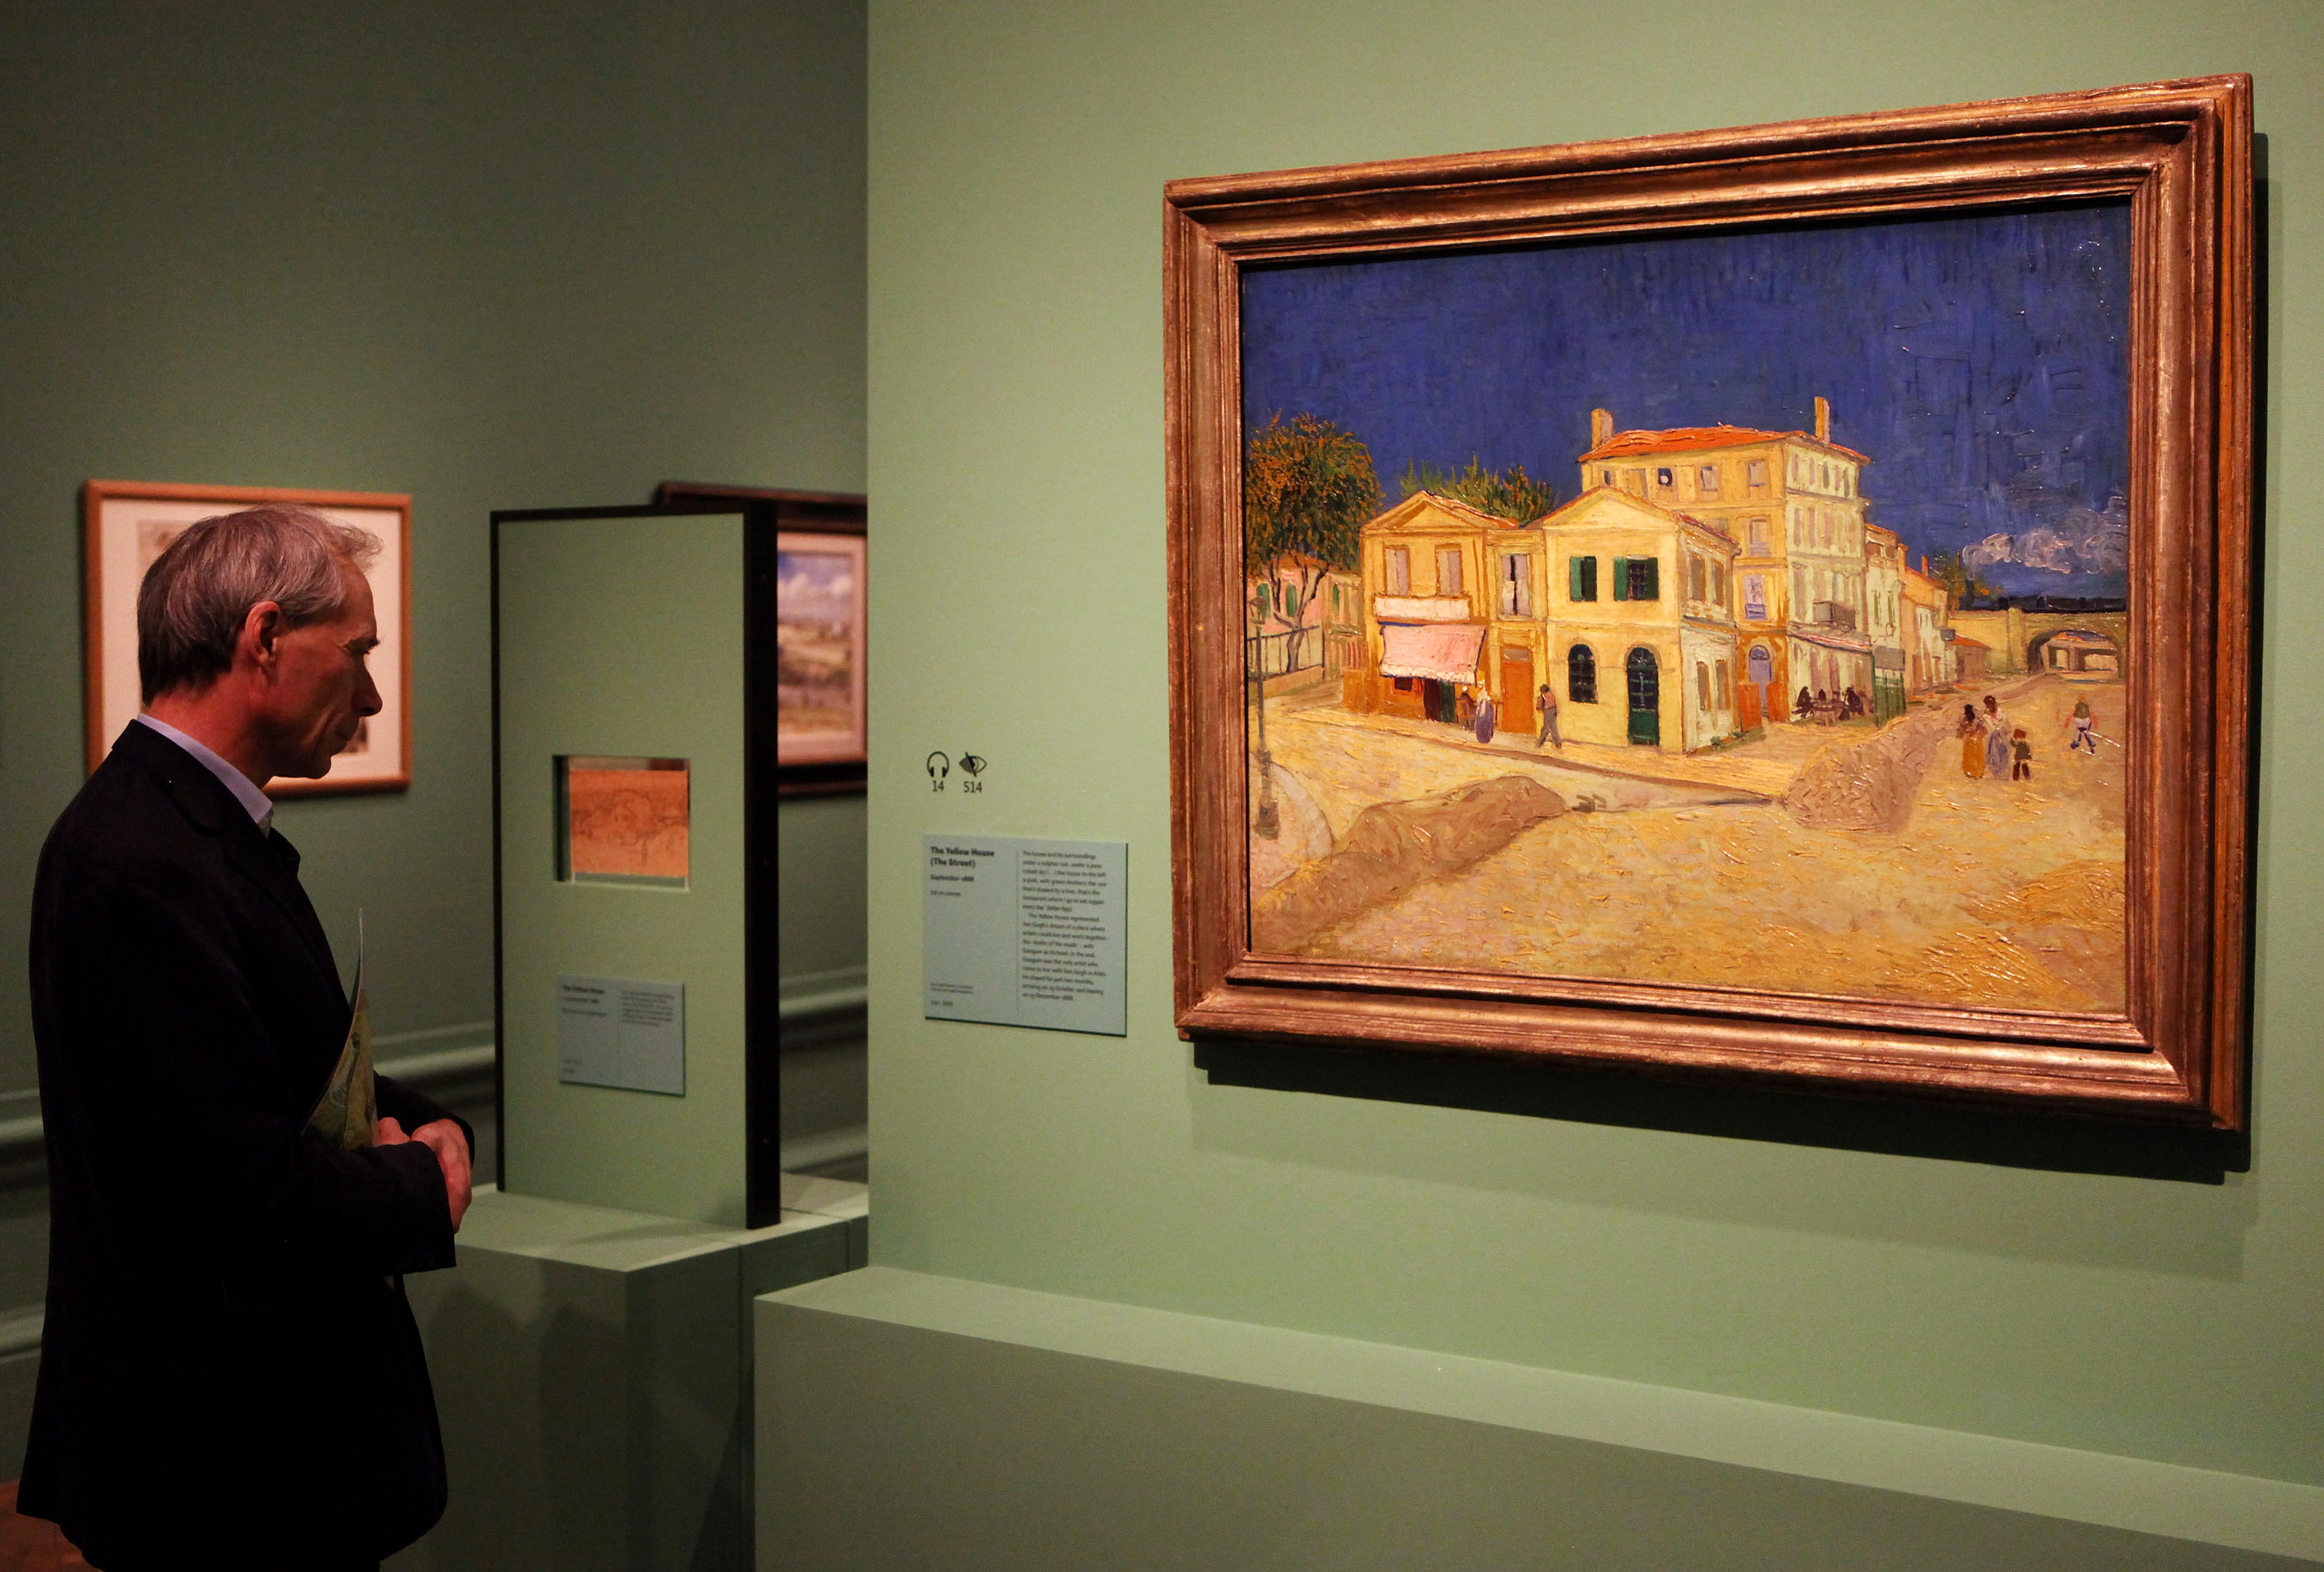 """A man admires an oil painting by acclaimed Dutch artist Vincent Van Gogh entitled """"The Yellow House (The Street)"""" in an exhibition of his work held at the Royal Academy of Arts on January 19, 2010 in London, England. (Photo by Oli Scarff/Getty Images)"""